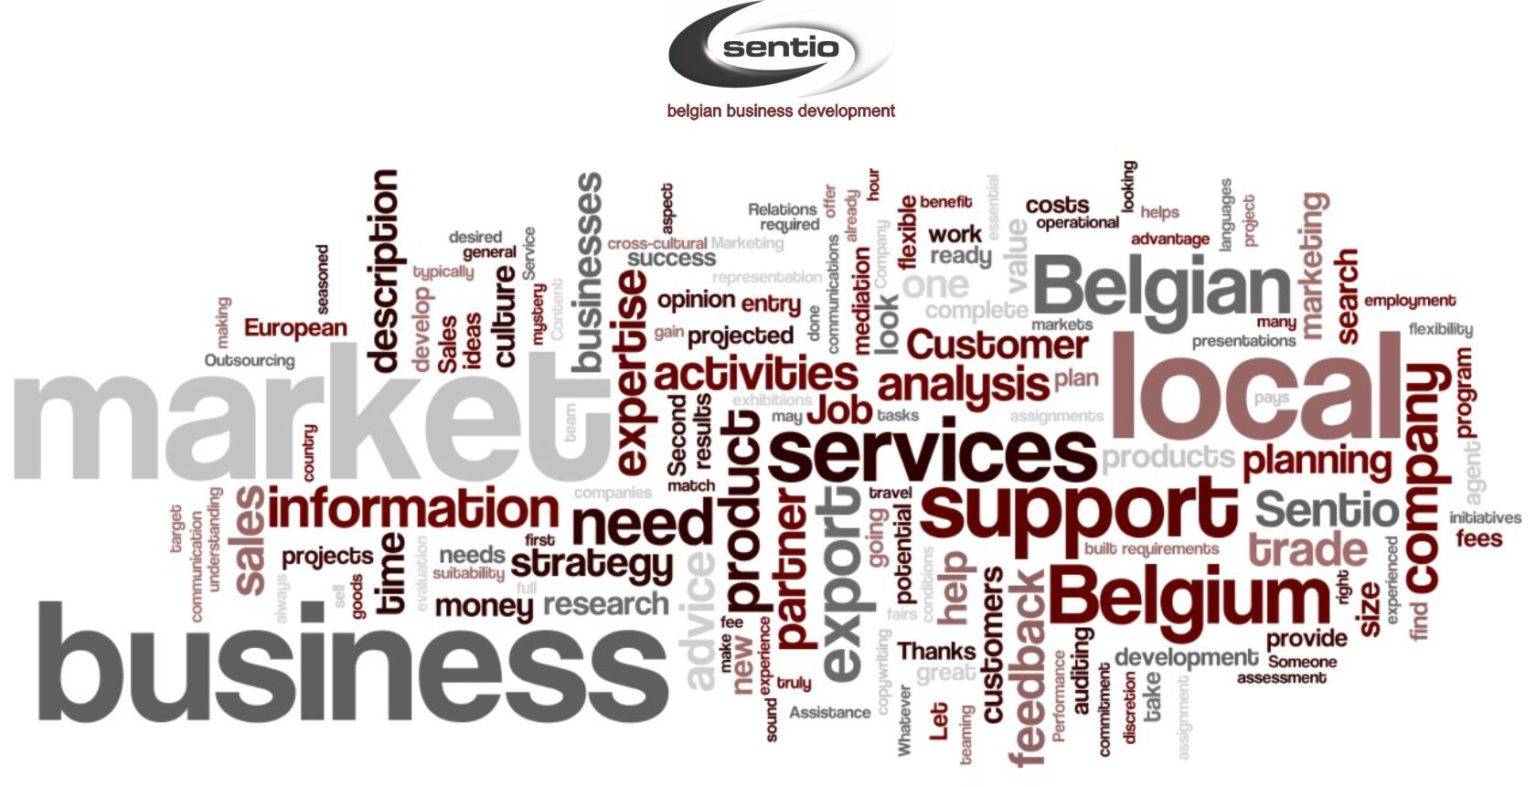 sentio belgian business development